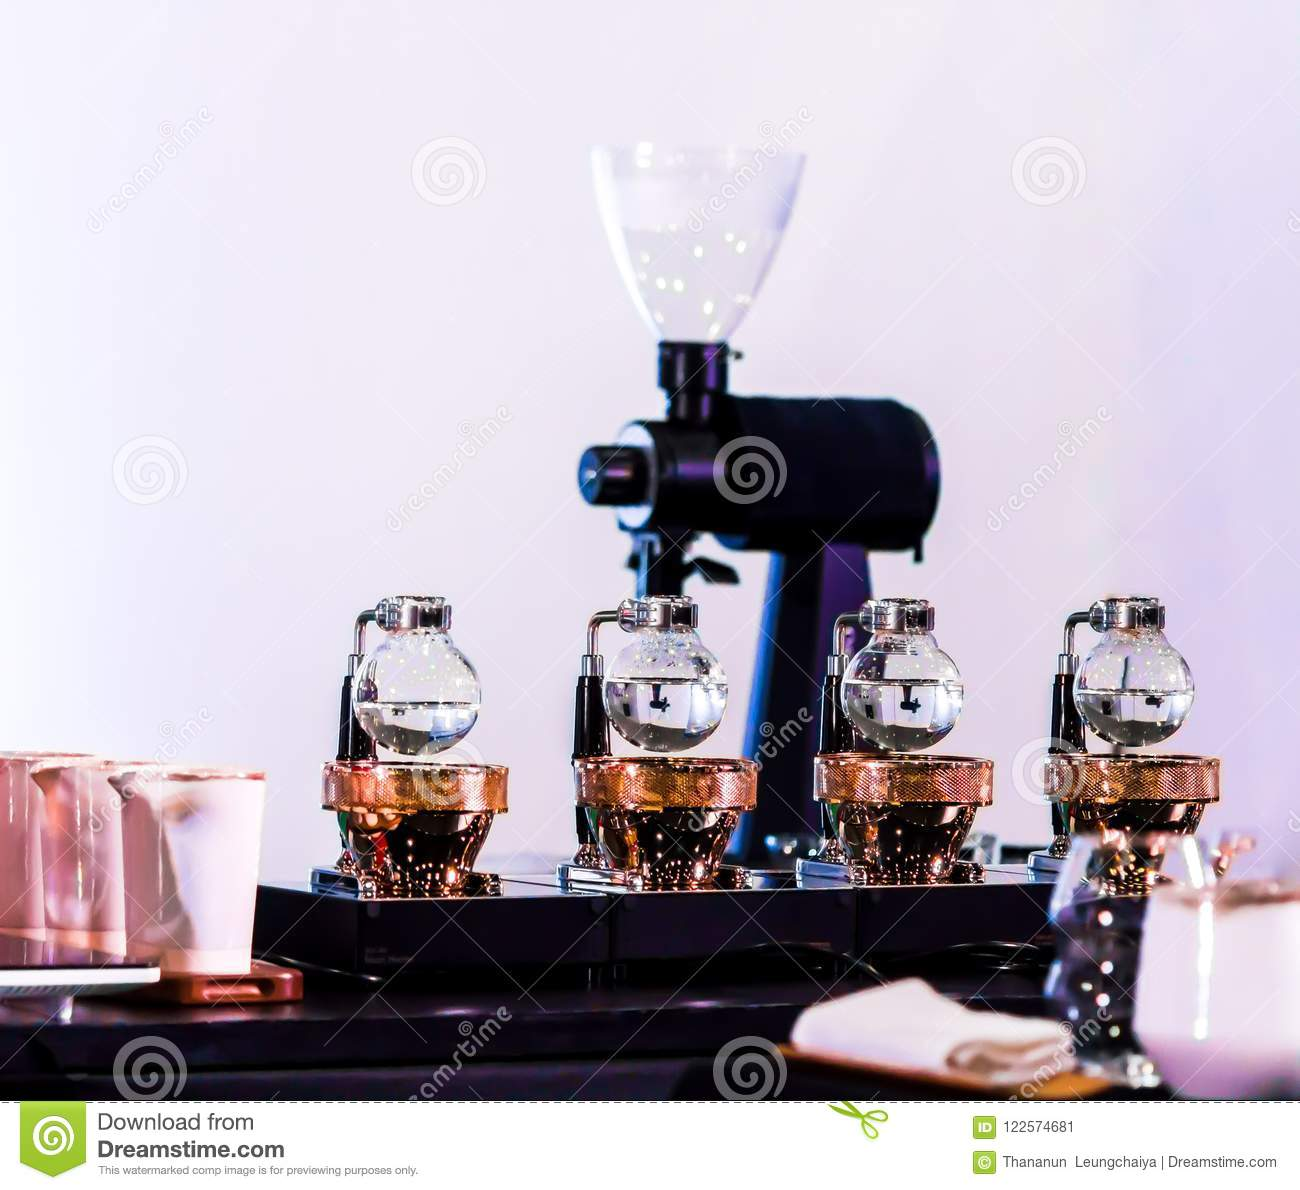 How to collect a siphon